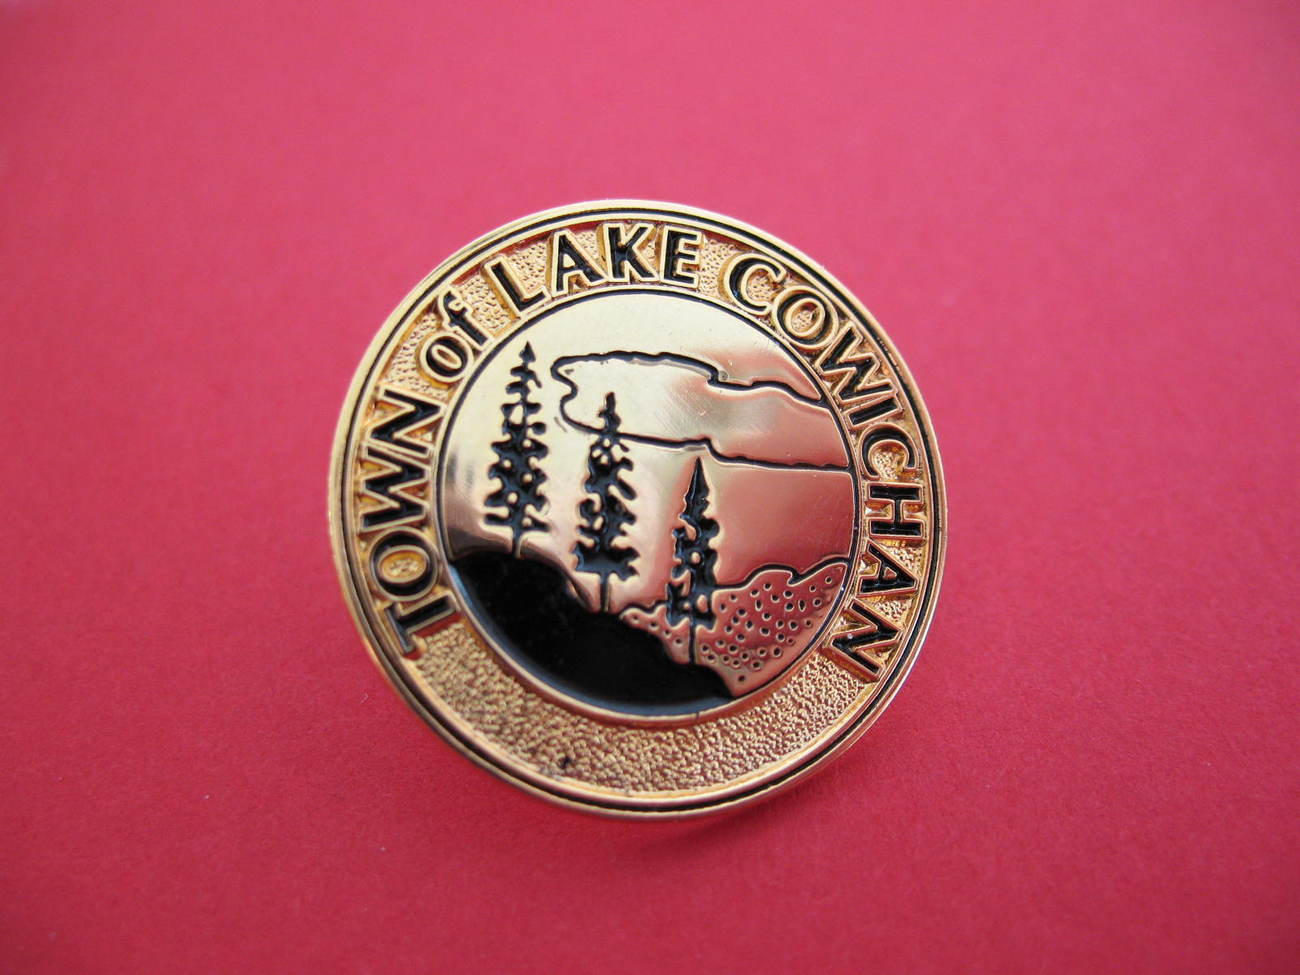 Primary image for Lake Cowichan British Columbia Souvenir Lapel Hat Pin